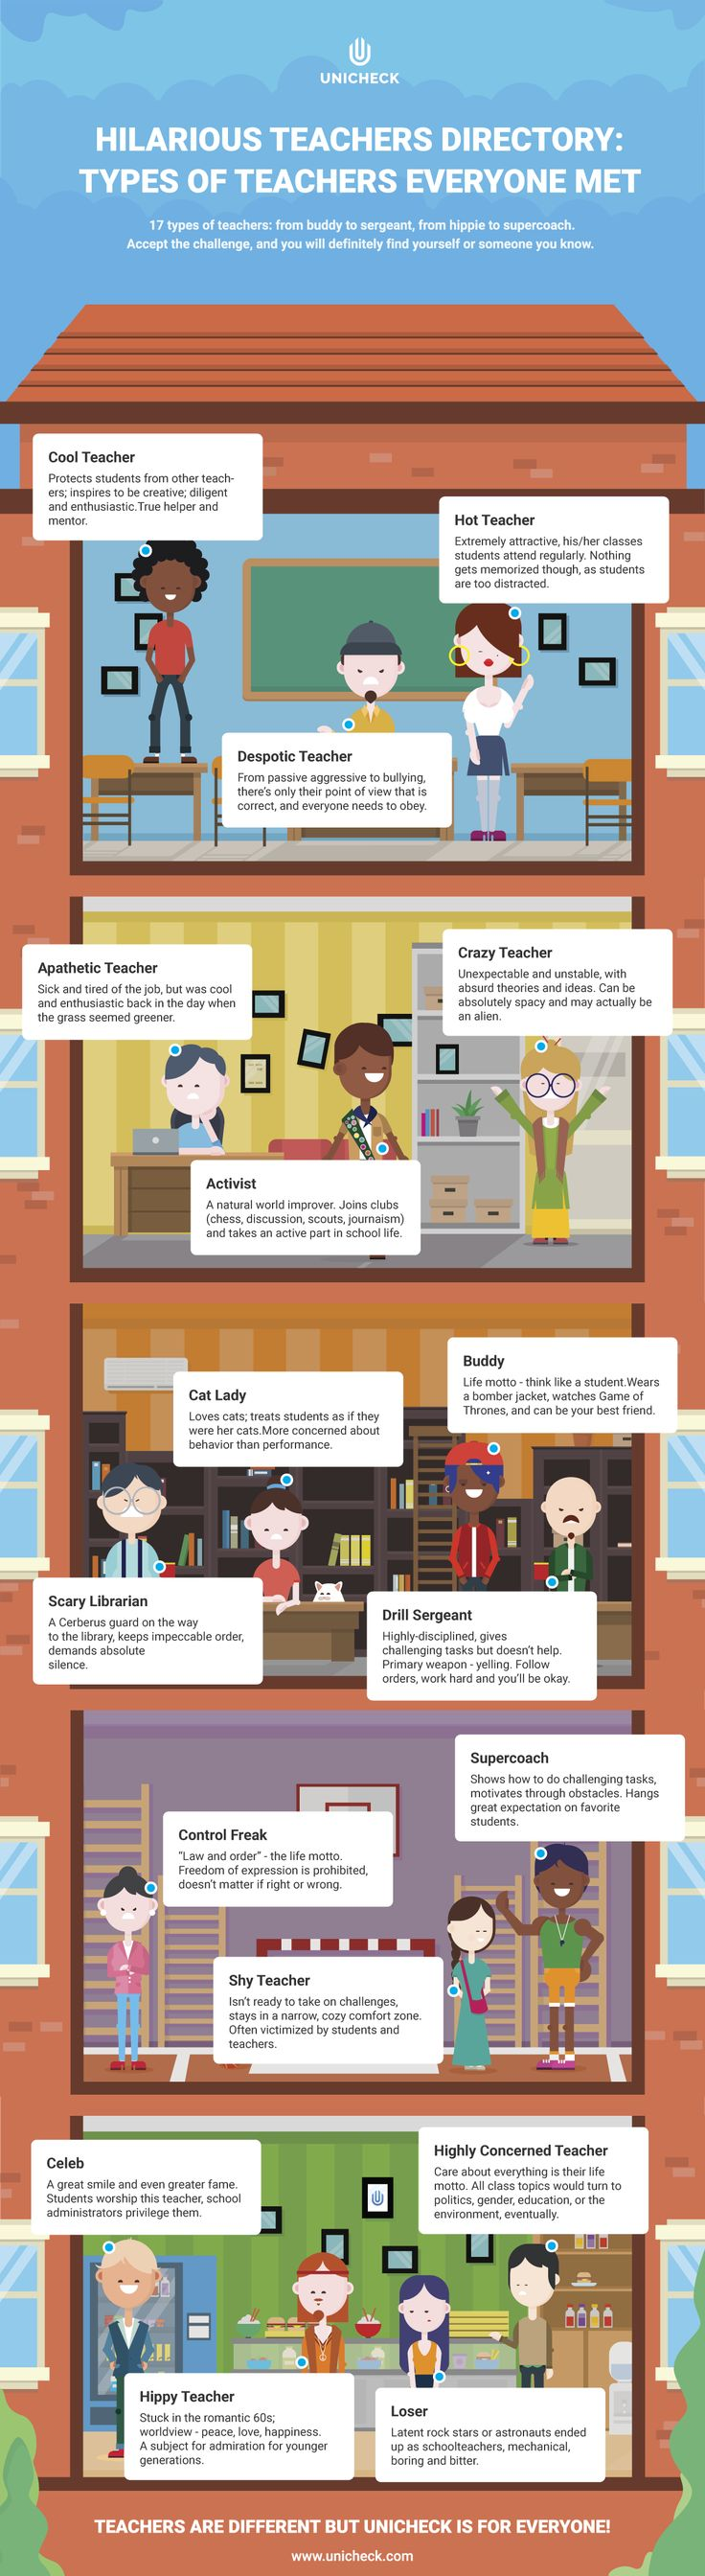 17 Types of Teachers Everyone Knows